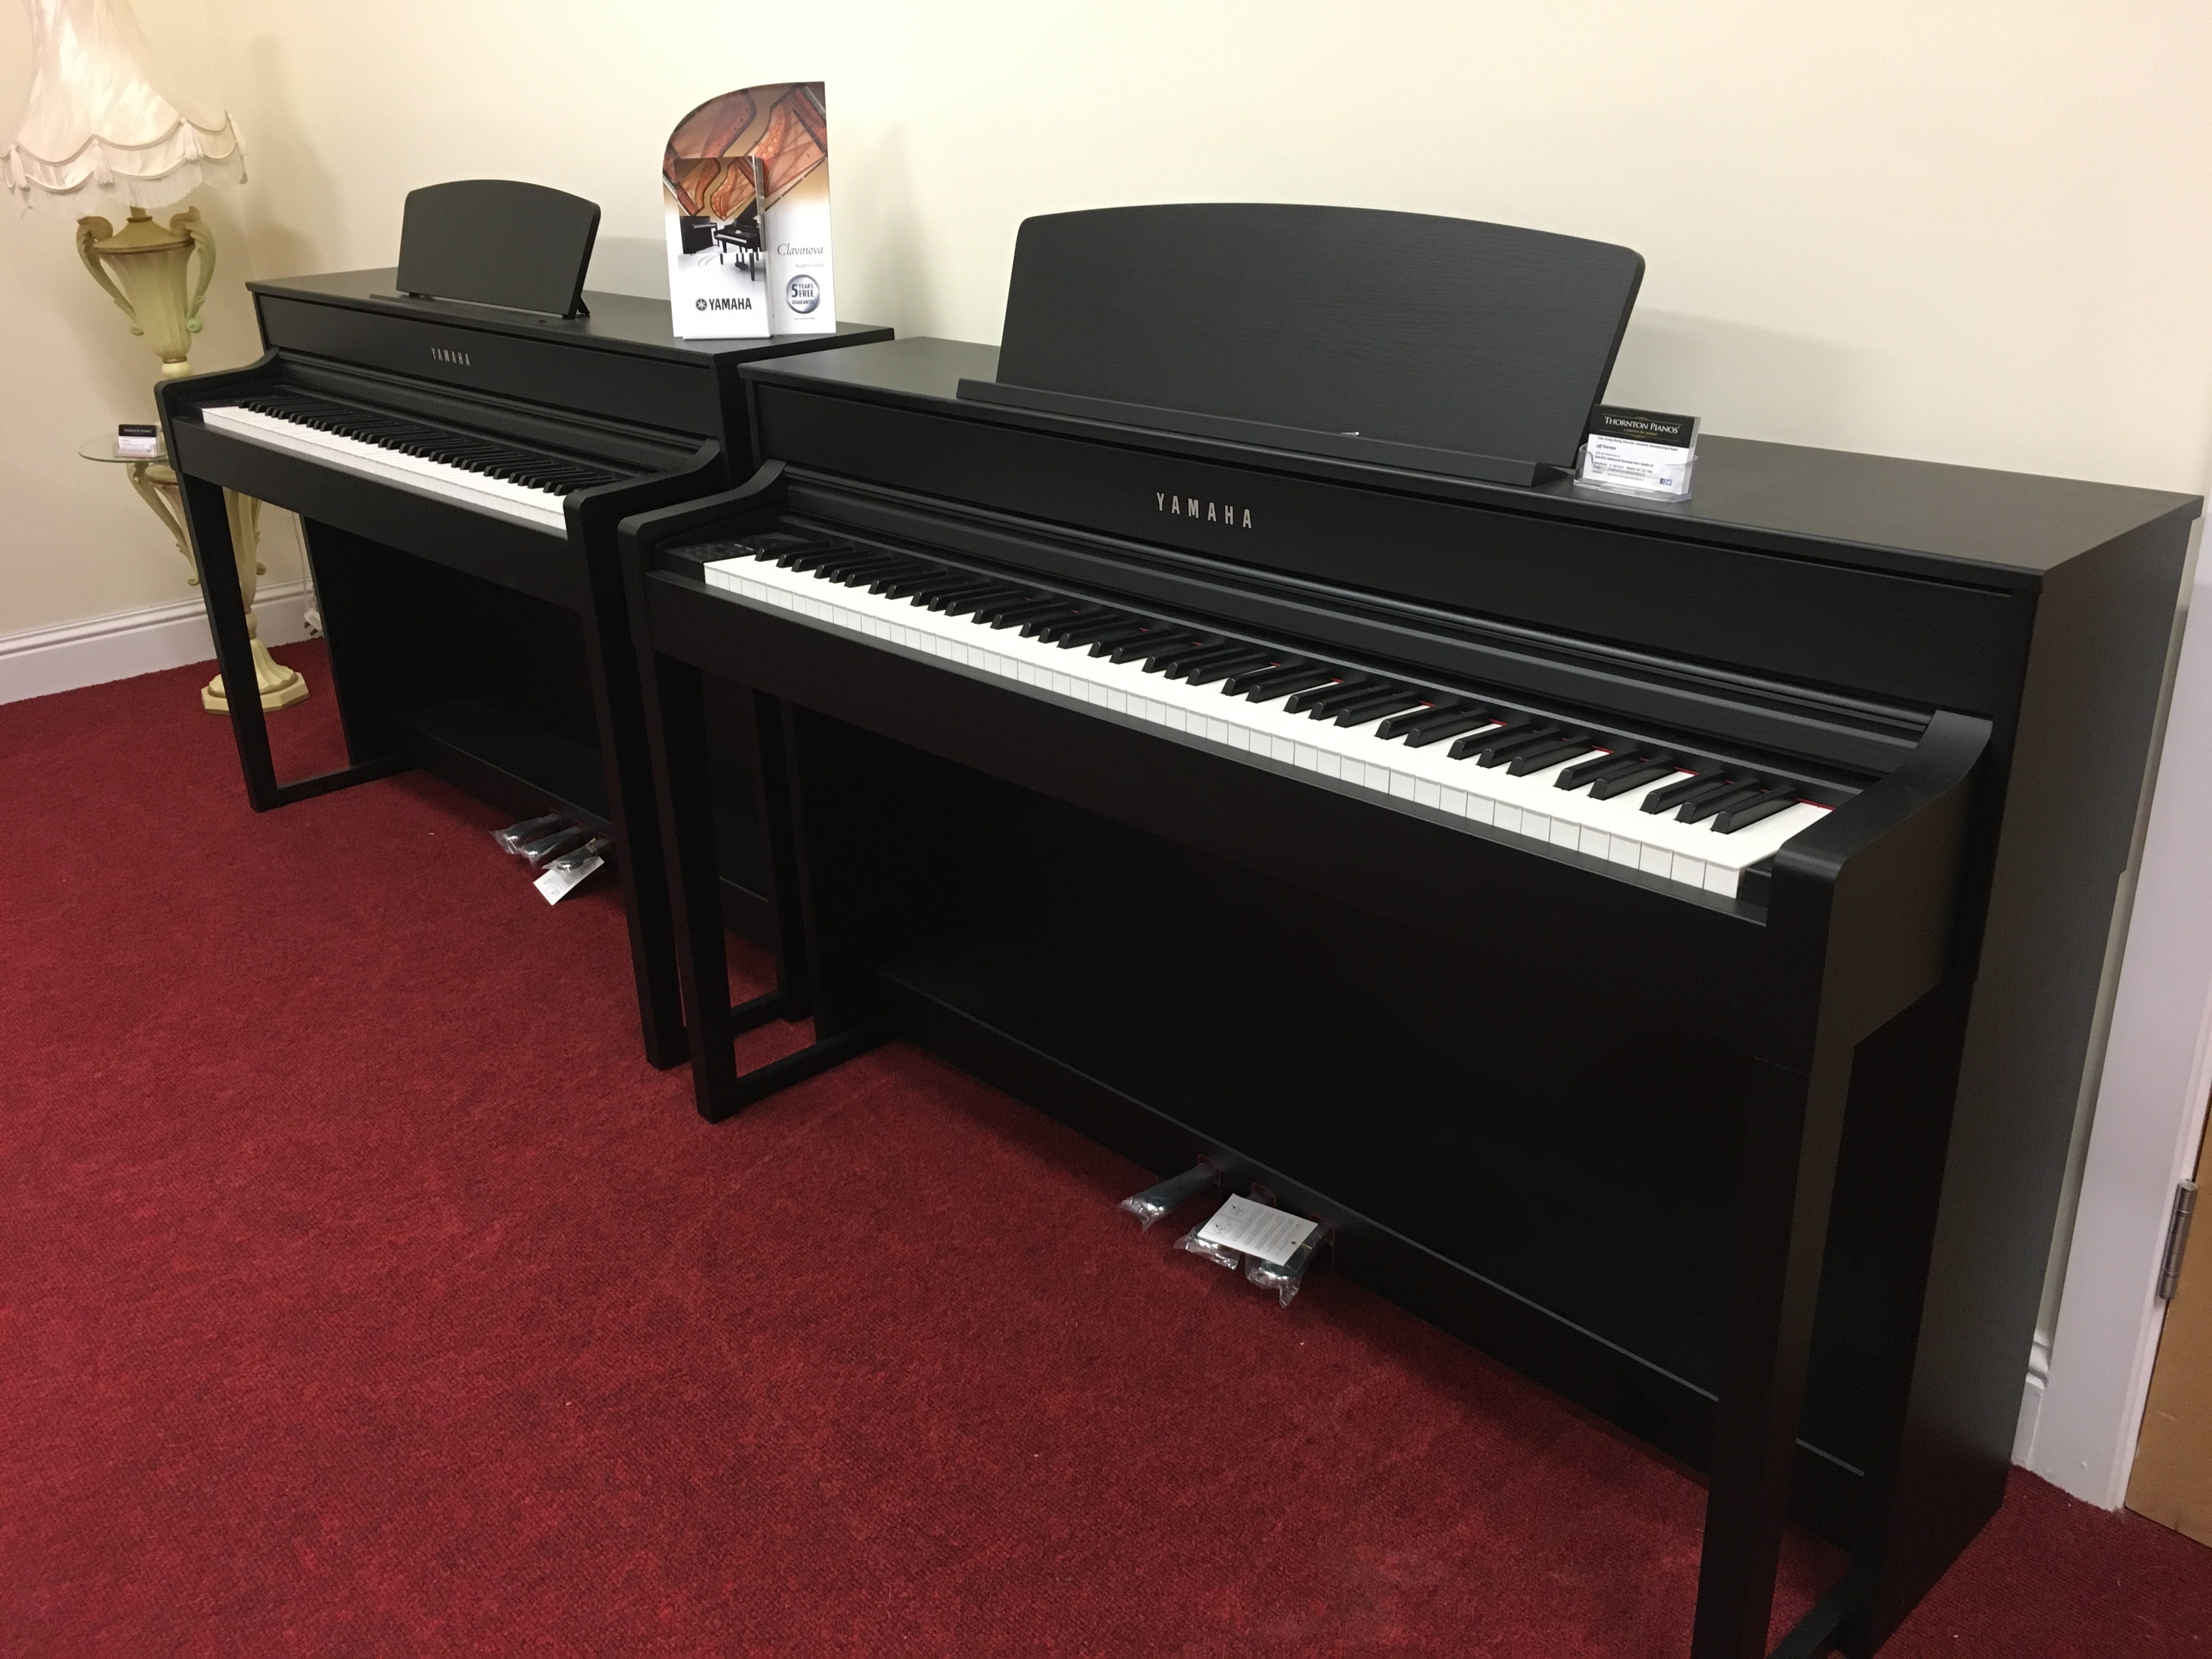 yamaha clavinova clp models promotion thornton pianos ireland. Black Bedroom Furniture Sets. Home Design Ideas